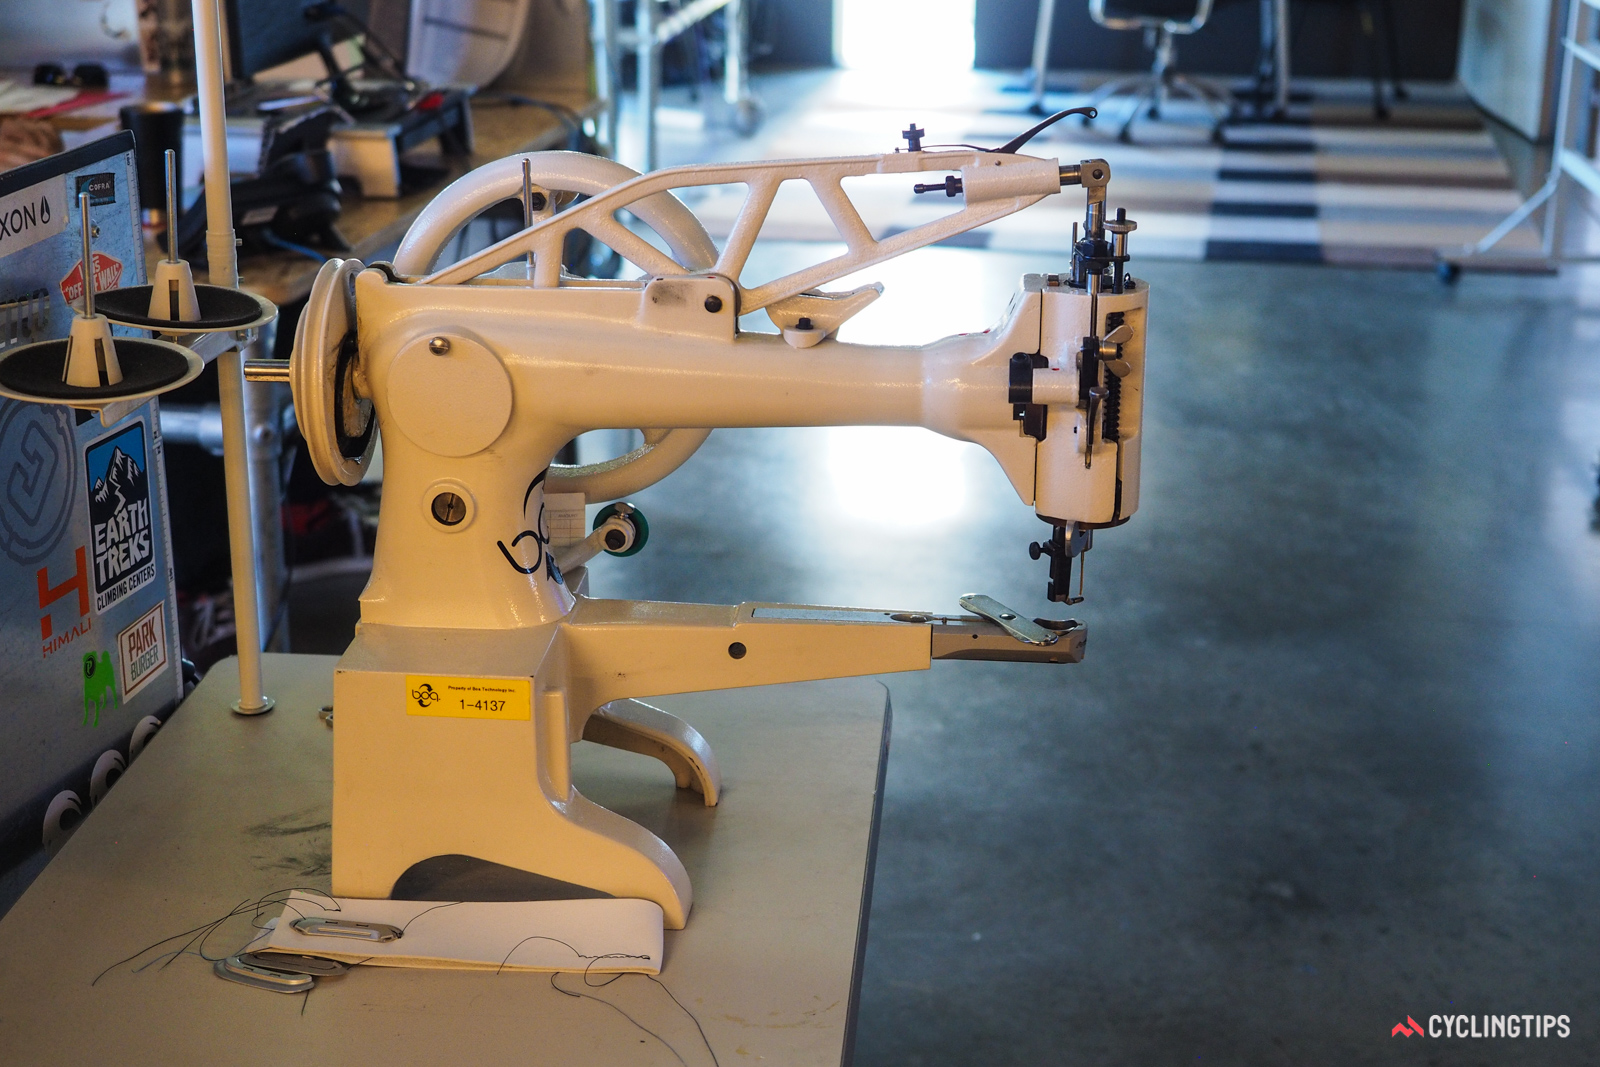 Sewing machines like are commonly found inside the Boa facility. The design allows easy retrofitting of Boa components on to shoes that are already built.